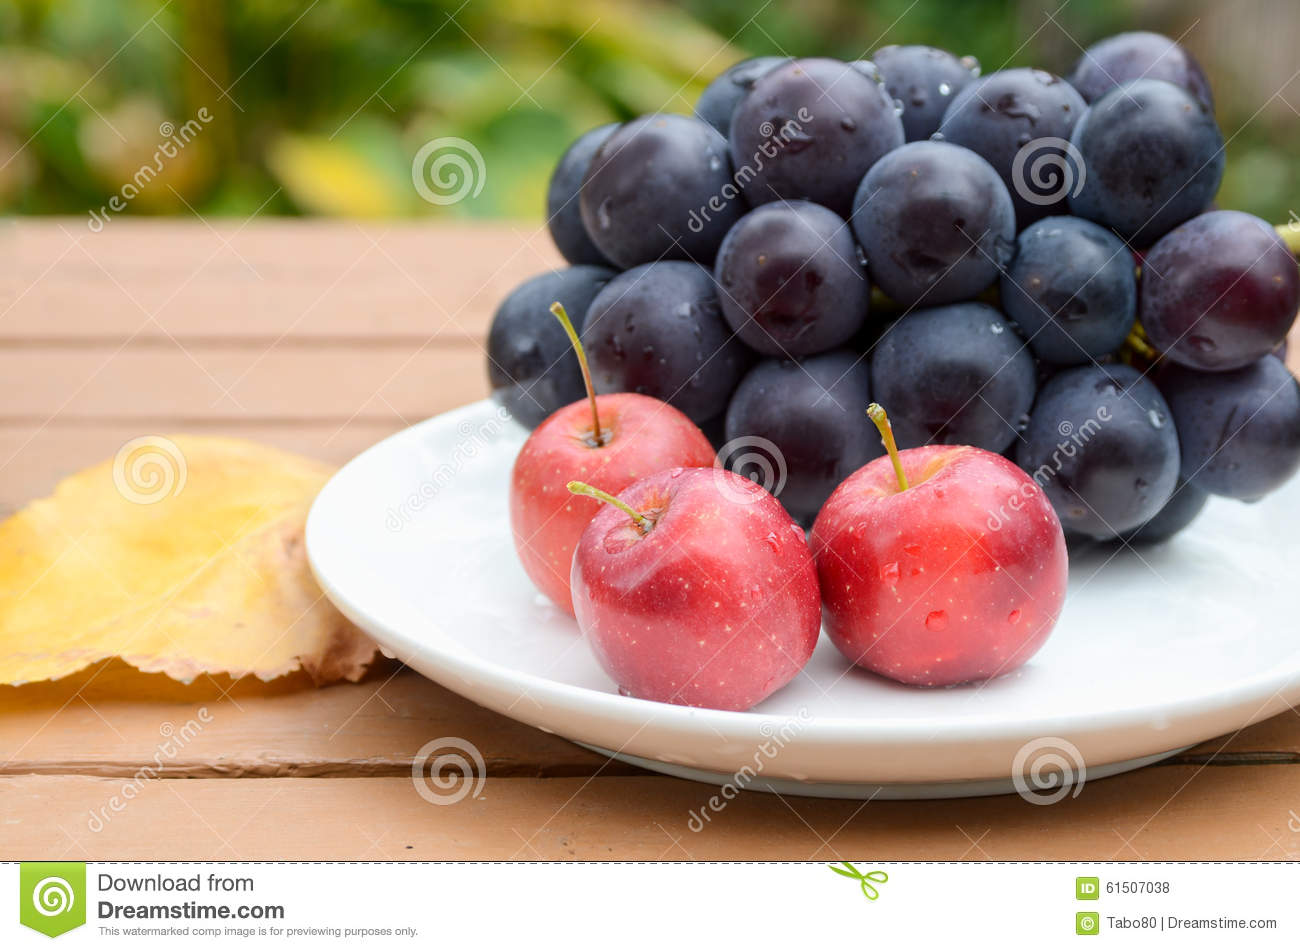 Small apple and grape on white plate in autumn.